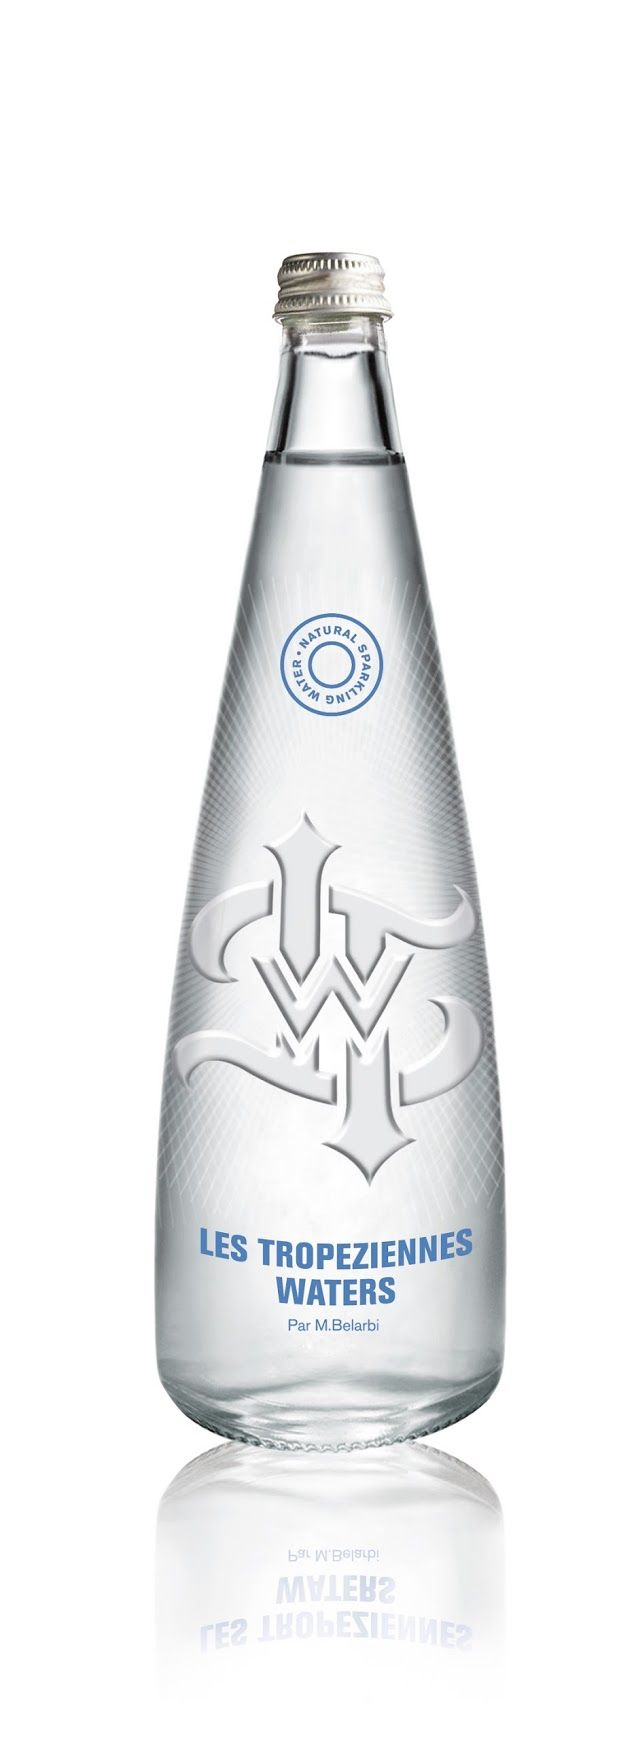 marketing and mineral bottled water Bottled water market (product type - still bottle water, carbonated bottle water,  flavored bottle water, and functional bottle water packaging - pet bottles.